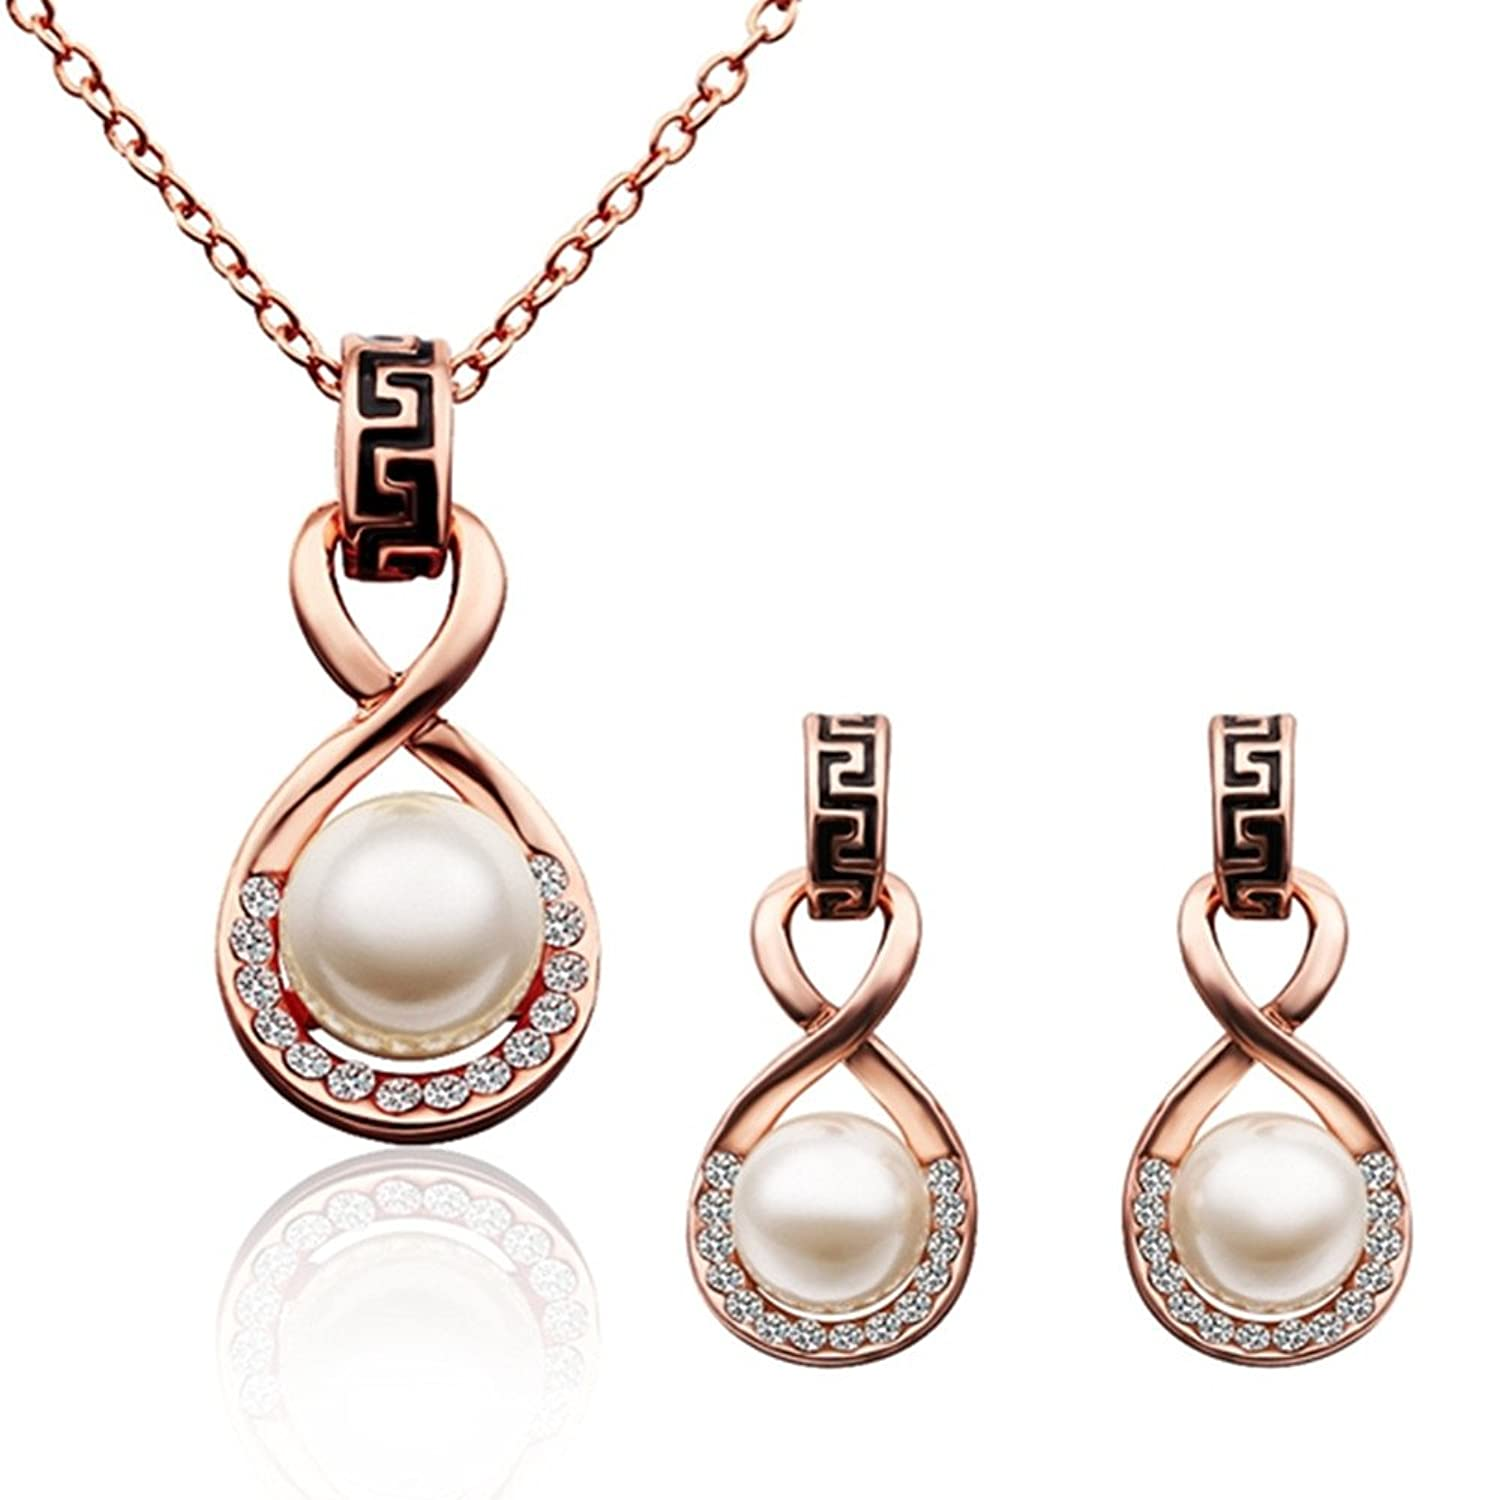 Amazoncom 18K Rose Gold Plated Simulated Pearl Jewelry Sets